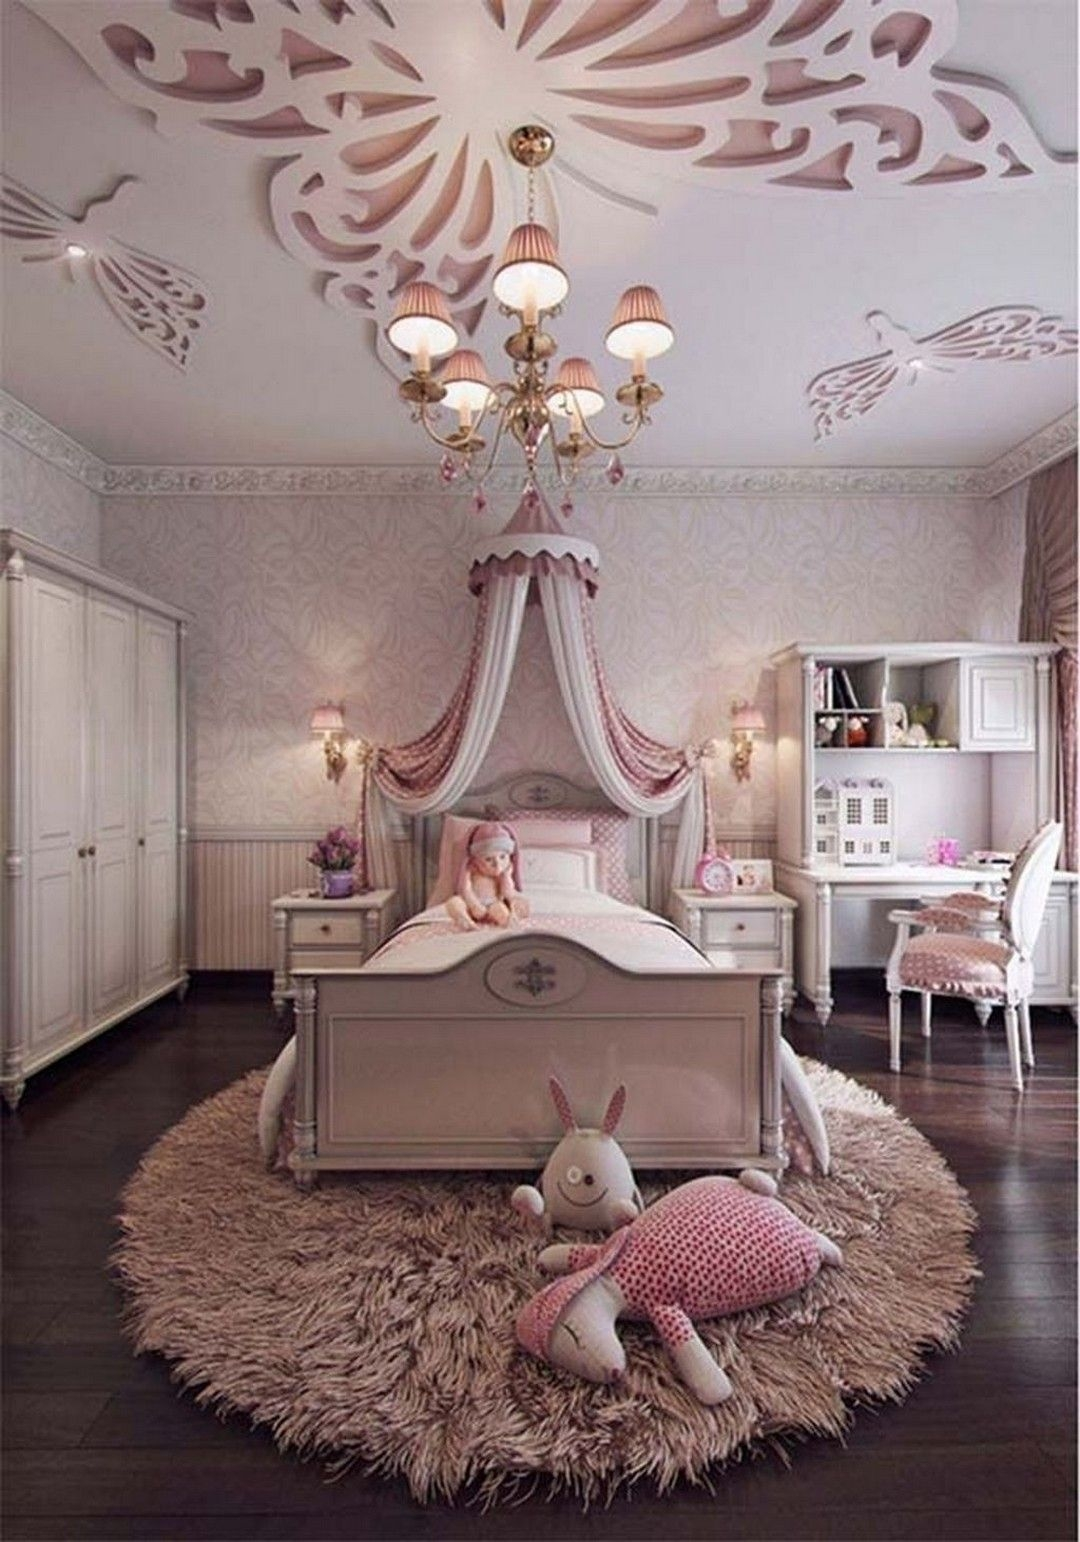 Charming Bedroom Designs Ideas That Will Inspire Your Kids41